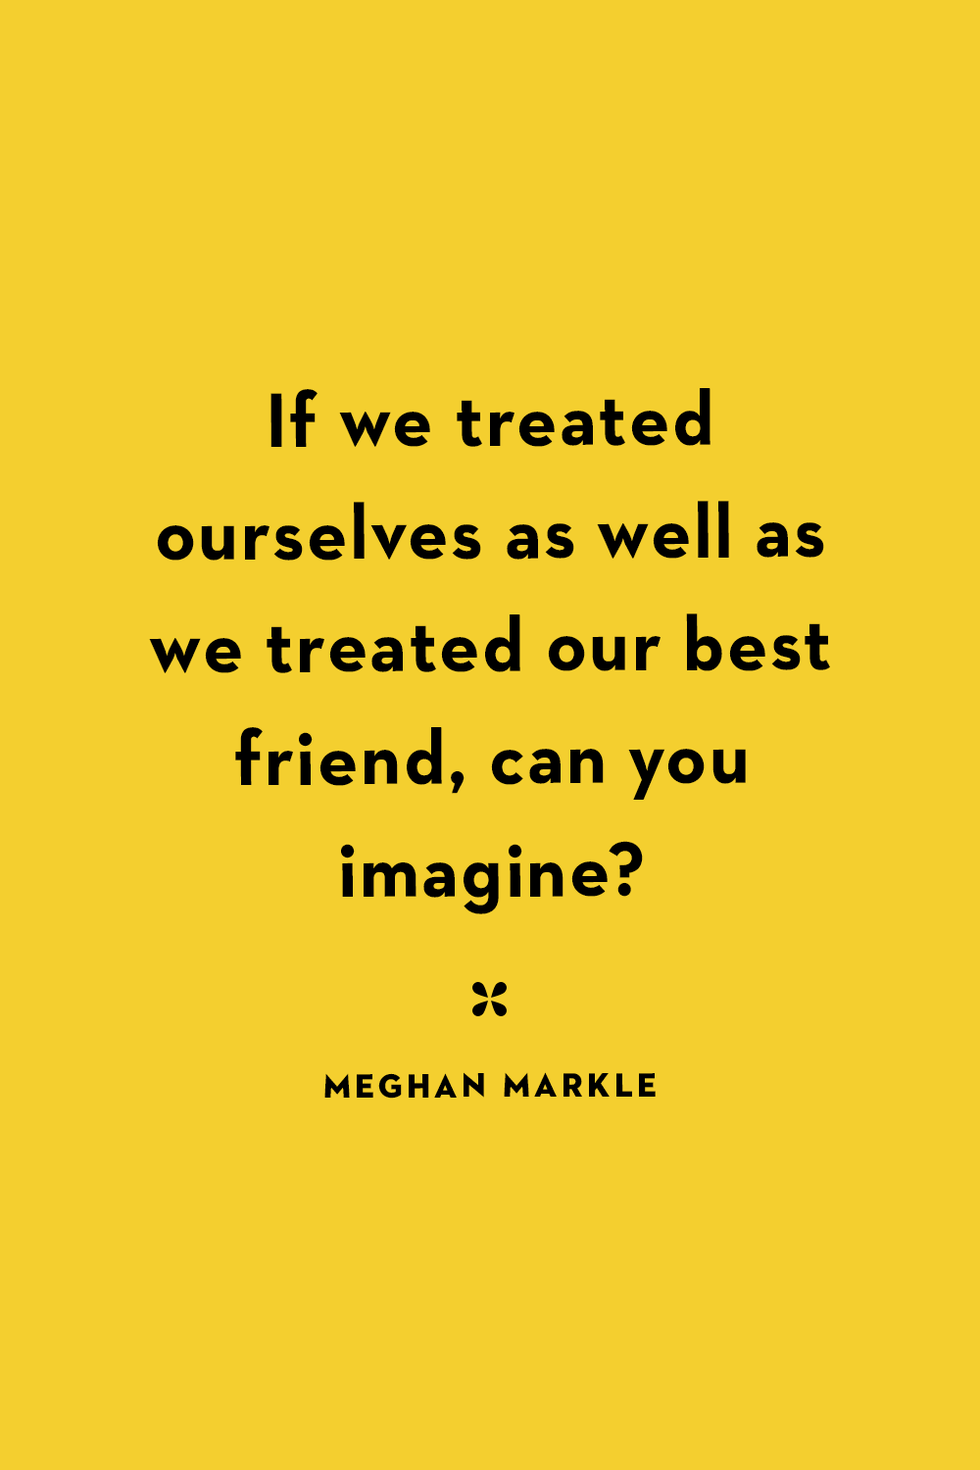 friendship-day-quotes-15